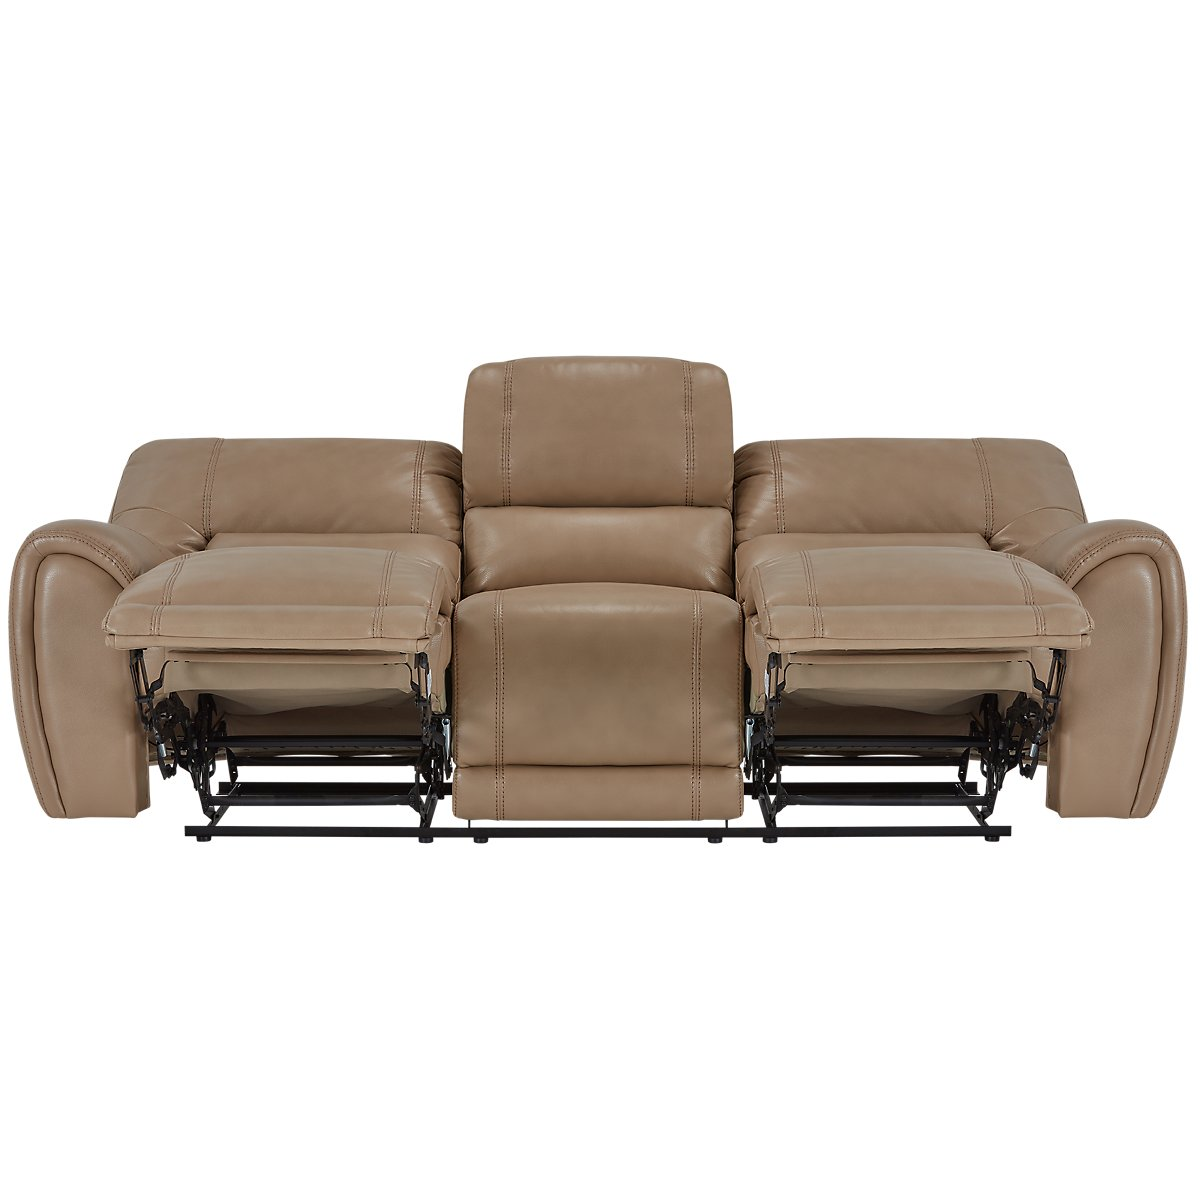 Bailey Taupe Microfiber Reclining Sofa